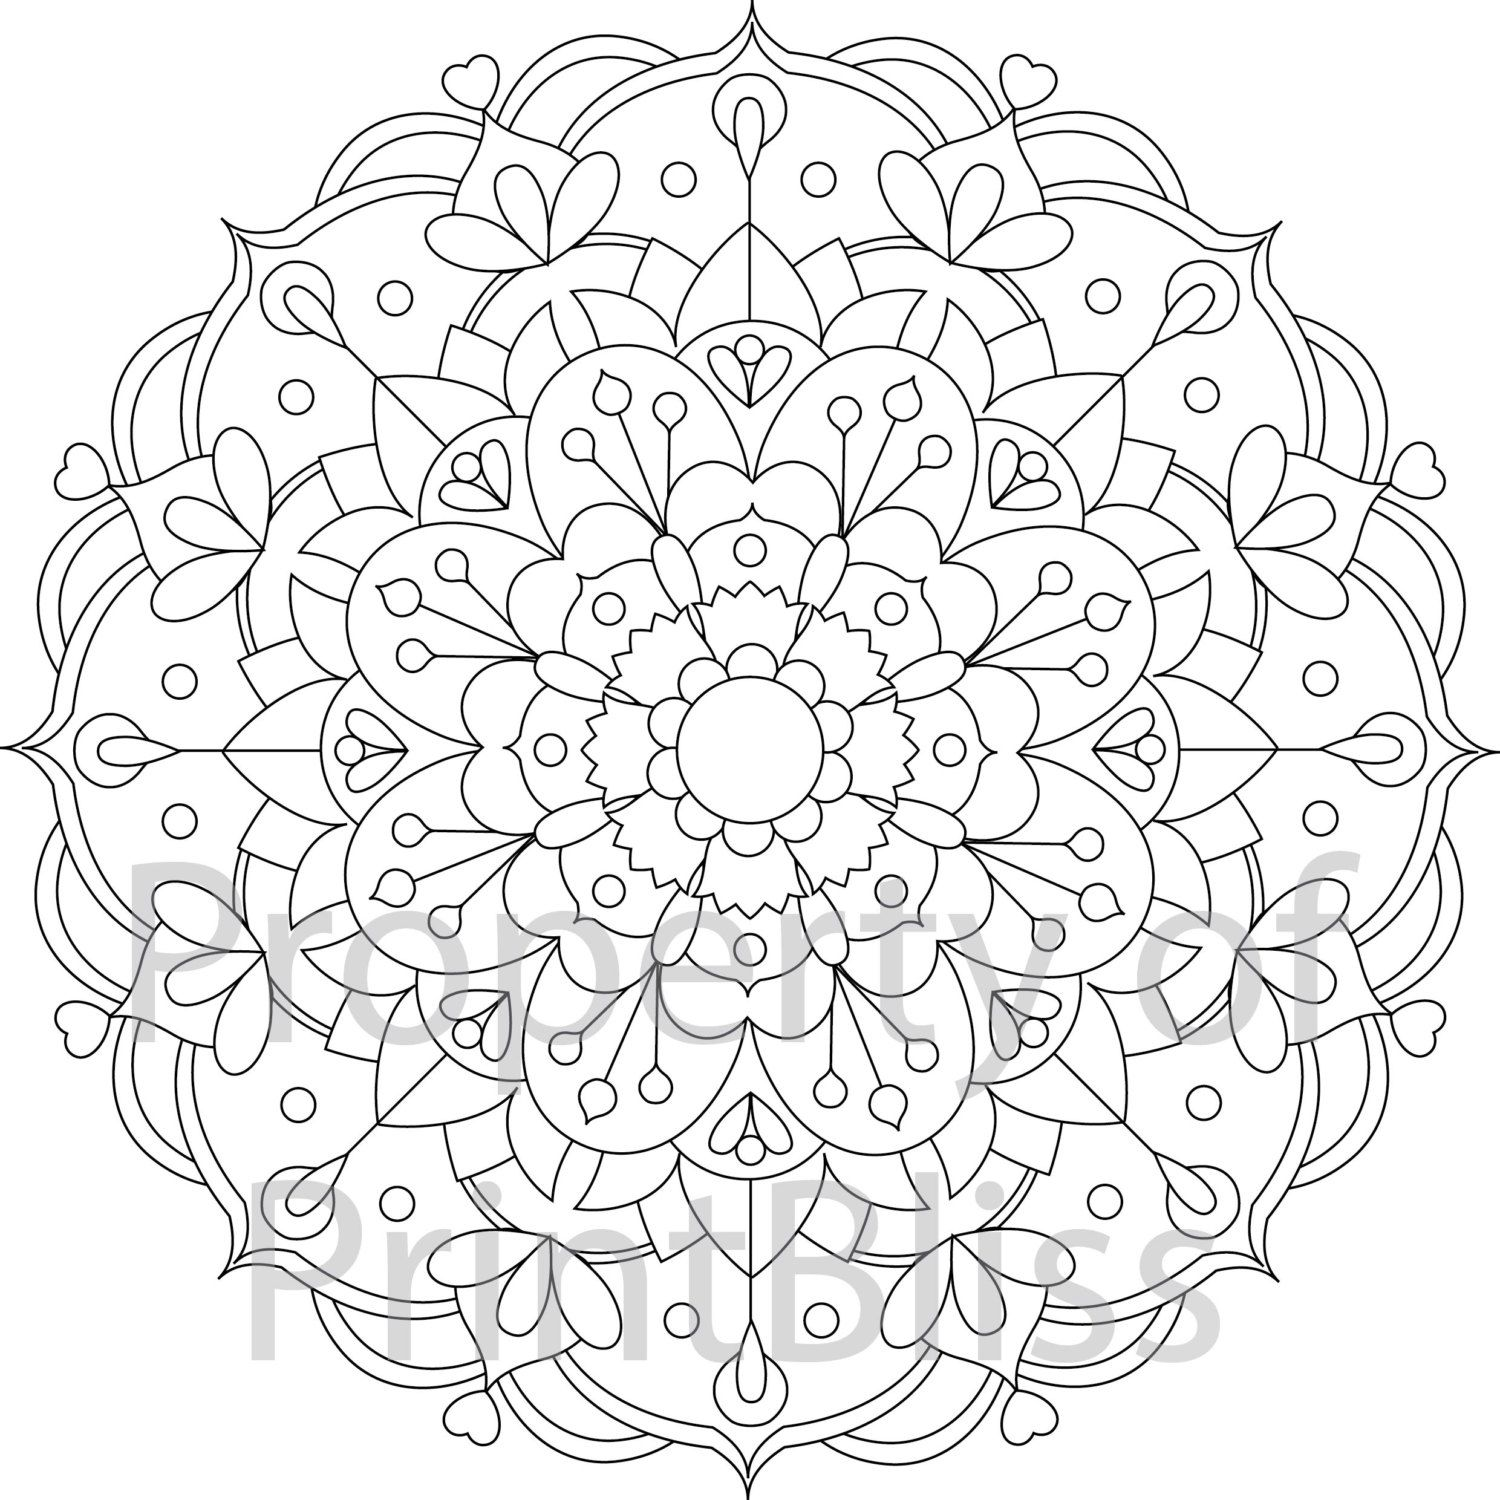 23 Flower Mandala printable coloring